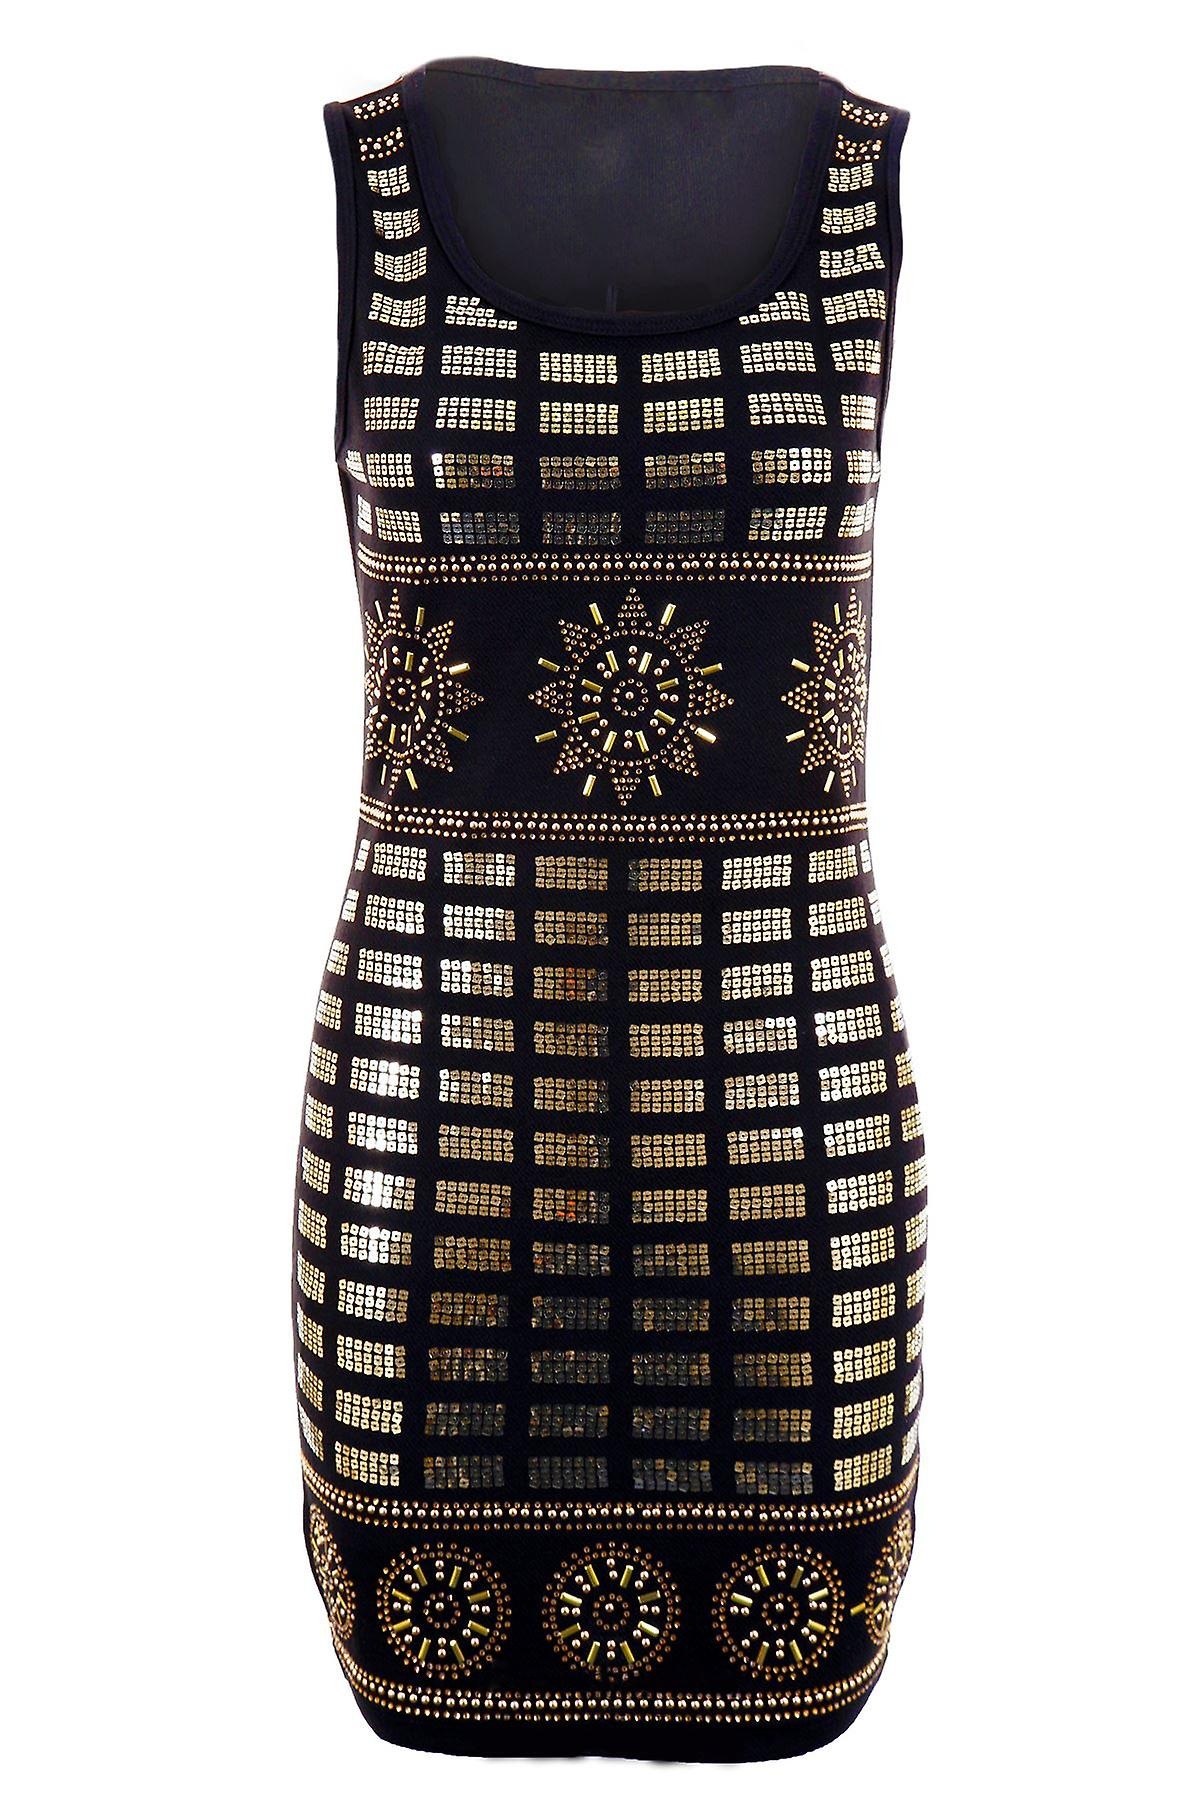 Ladies Gold Sequin Embroidery Studded Stretch Bodycon Women's Party Dress